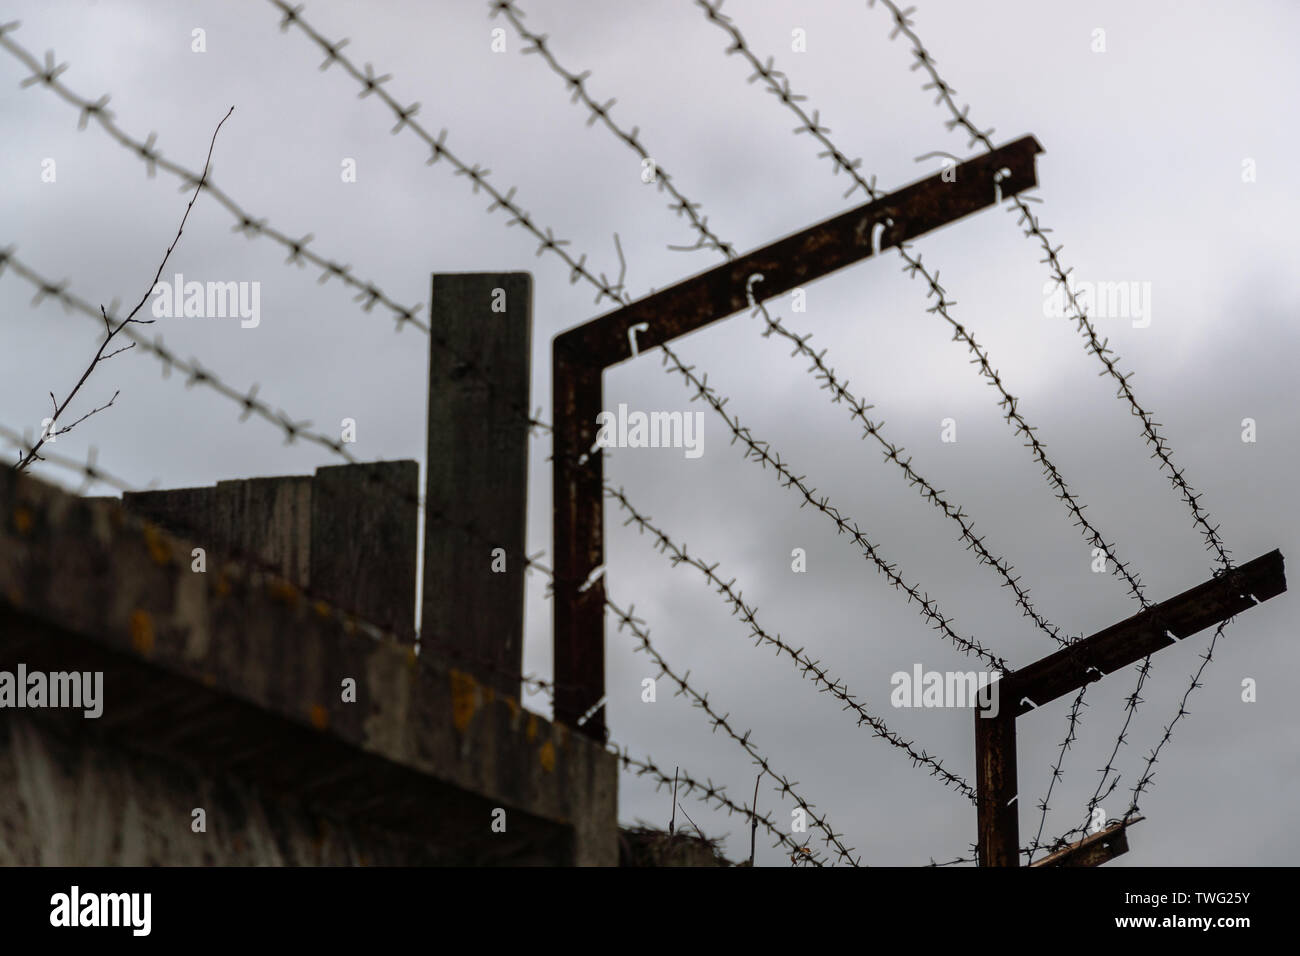 barbed wire on the fence in cloudy weather Stock Photo